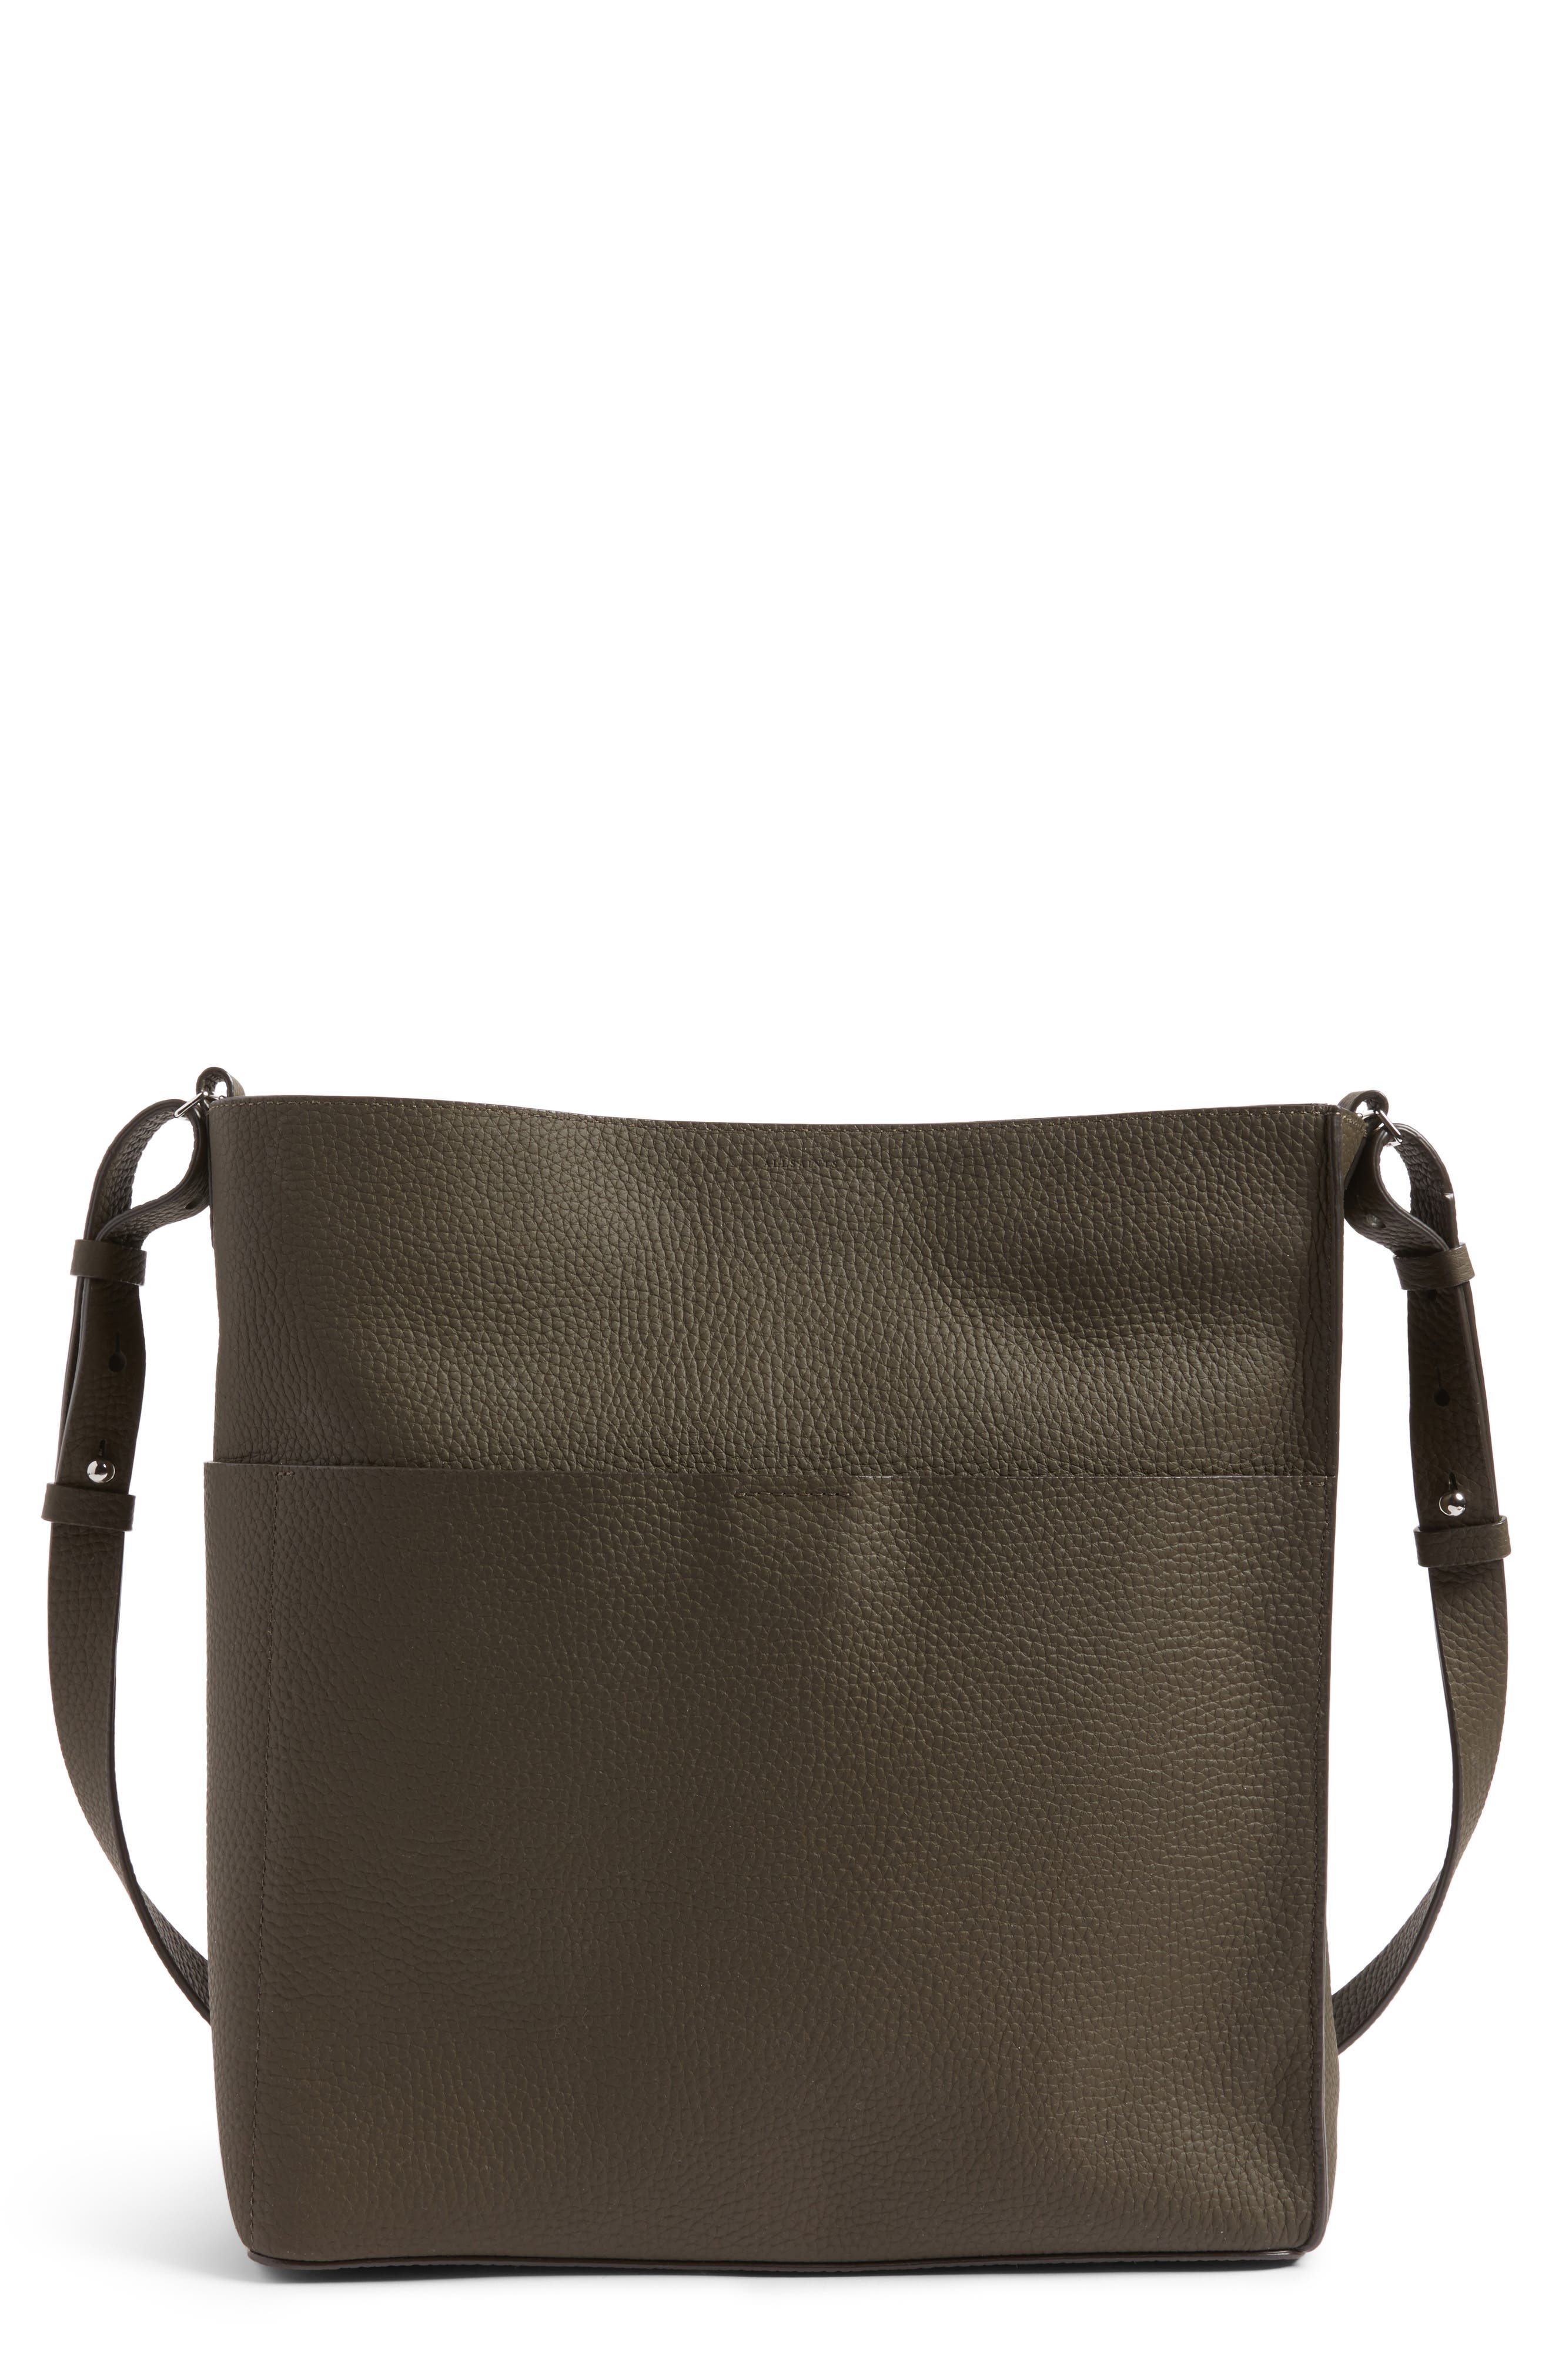 Alternate Image 1 Selected - ALLSAINTS Mast Crossbody Tote (Nordstrom Exclusive)